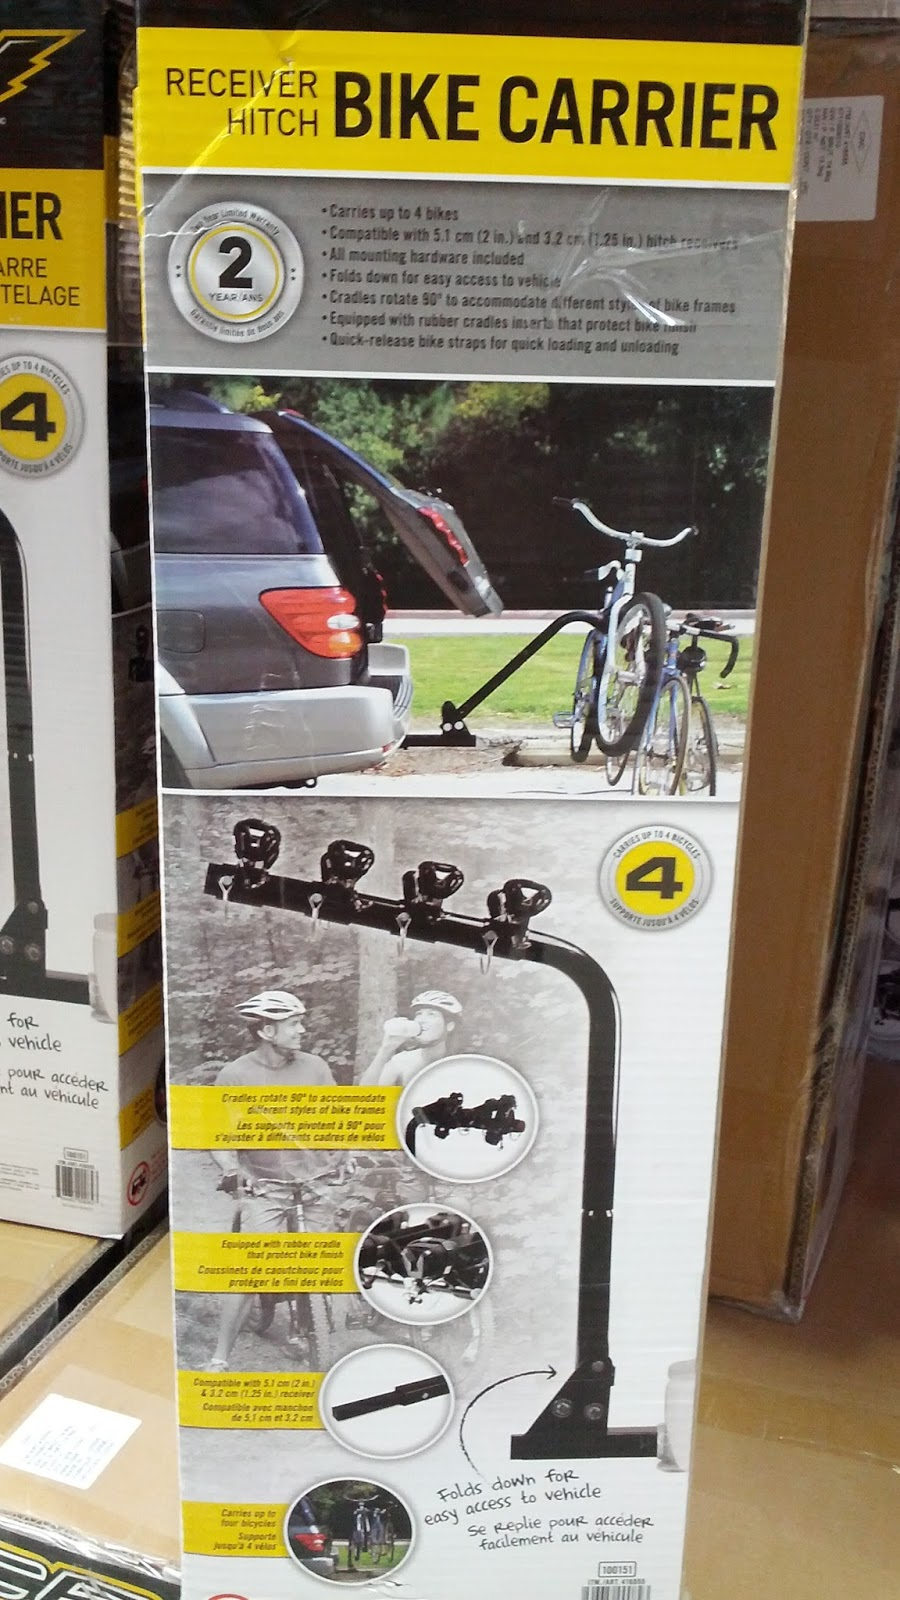 Receiver Hitch Bike Rack >> Champion Power Equipment Hitch Mount Bike Carrier | Costco Weekender